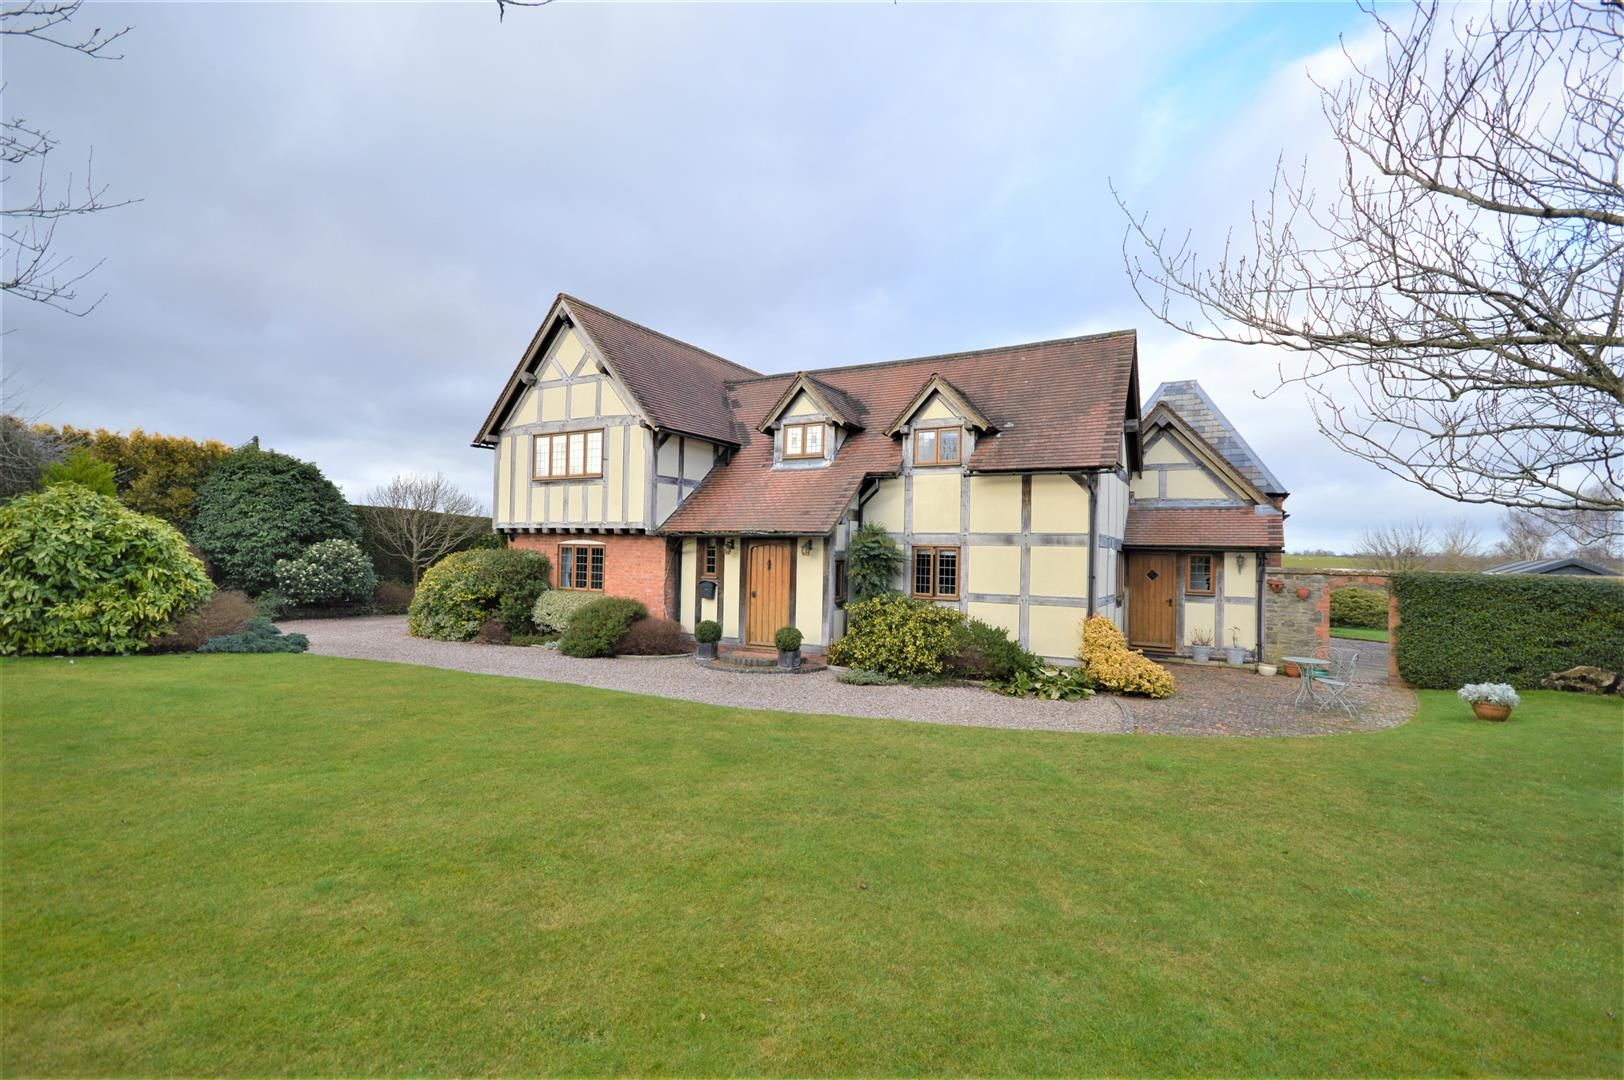 4 bed detached for sale in Marden, HR1